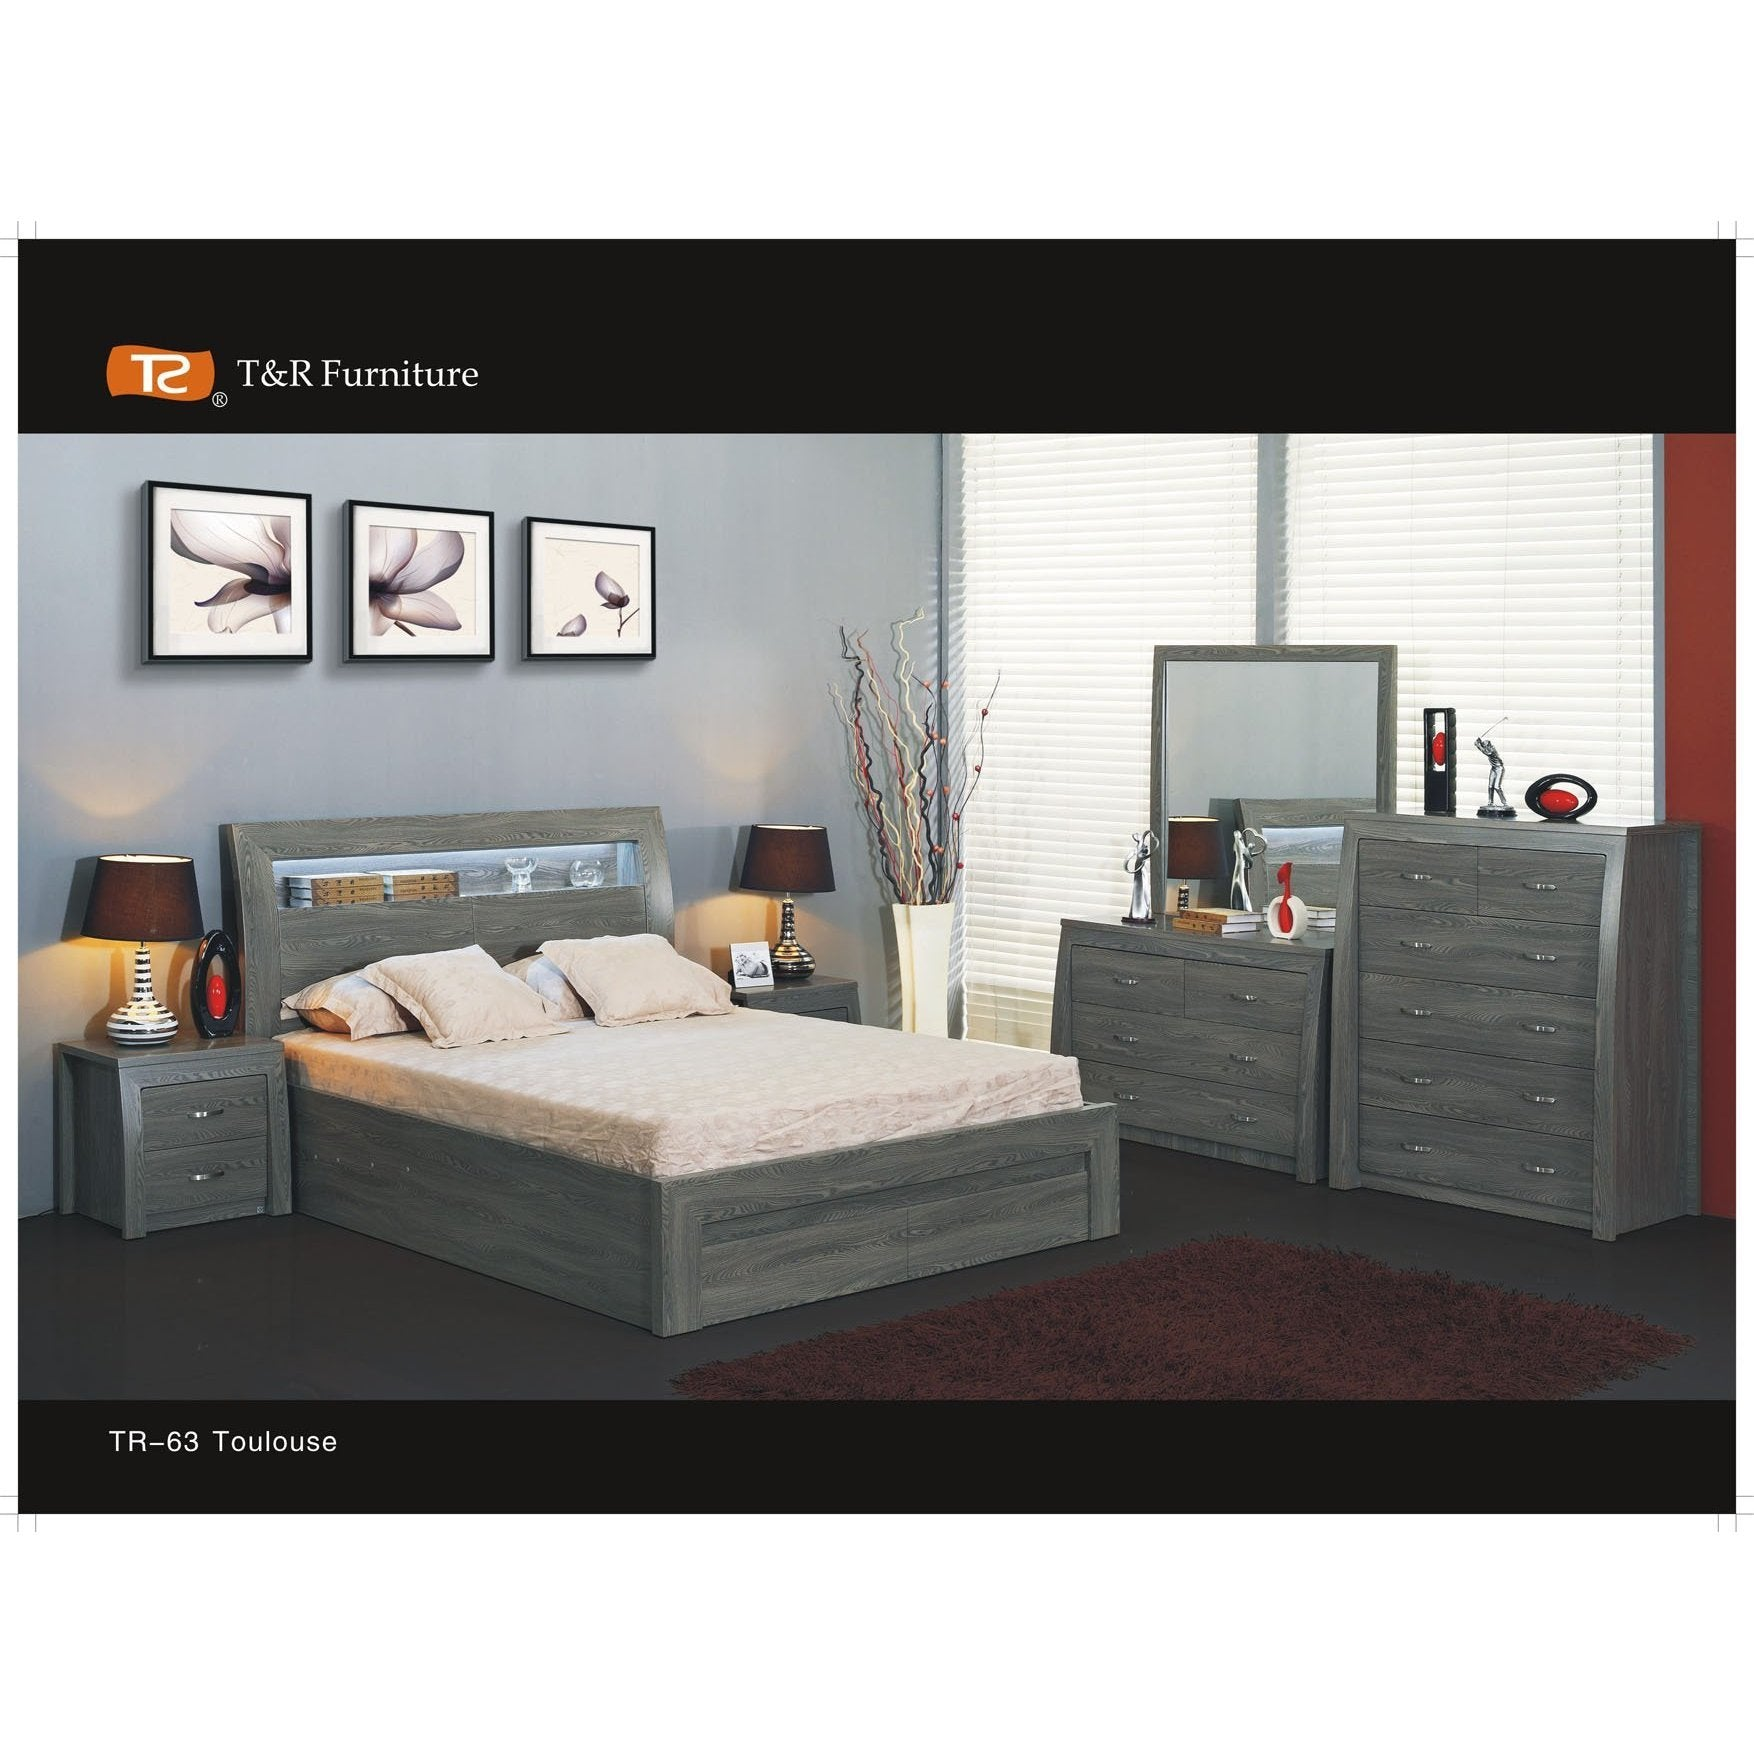 Toulouse Lift Dresser Bedroom Suite First Choice Furniture